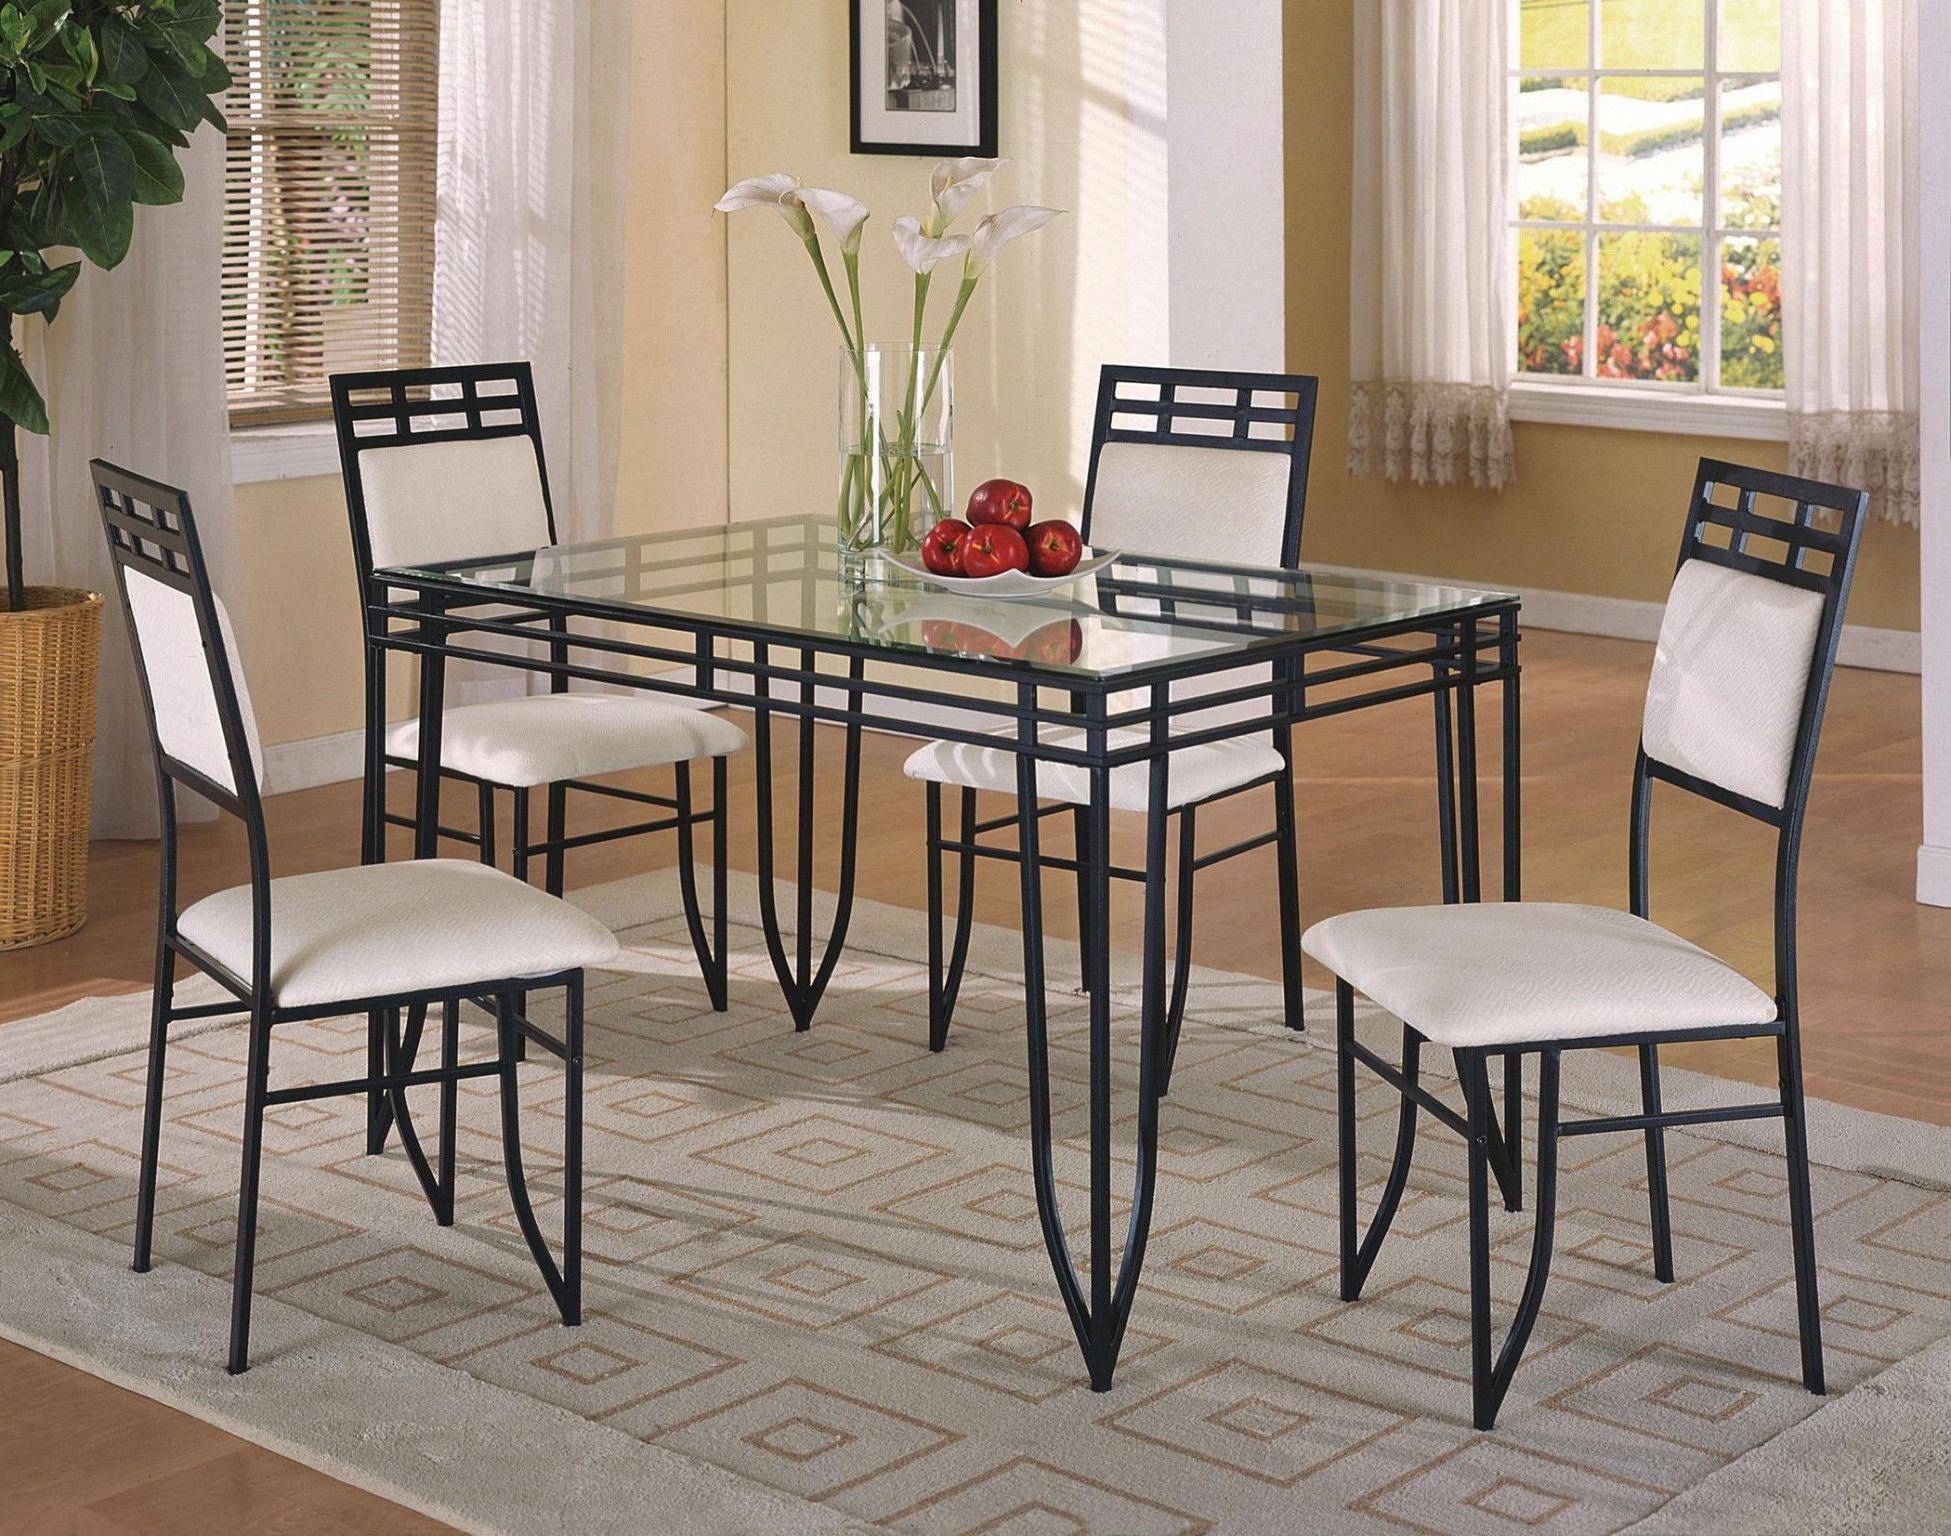 Home Design Ideas Regarding Middleport 5 Piece Dining Sets (View 18 of 25)